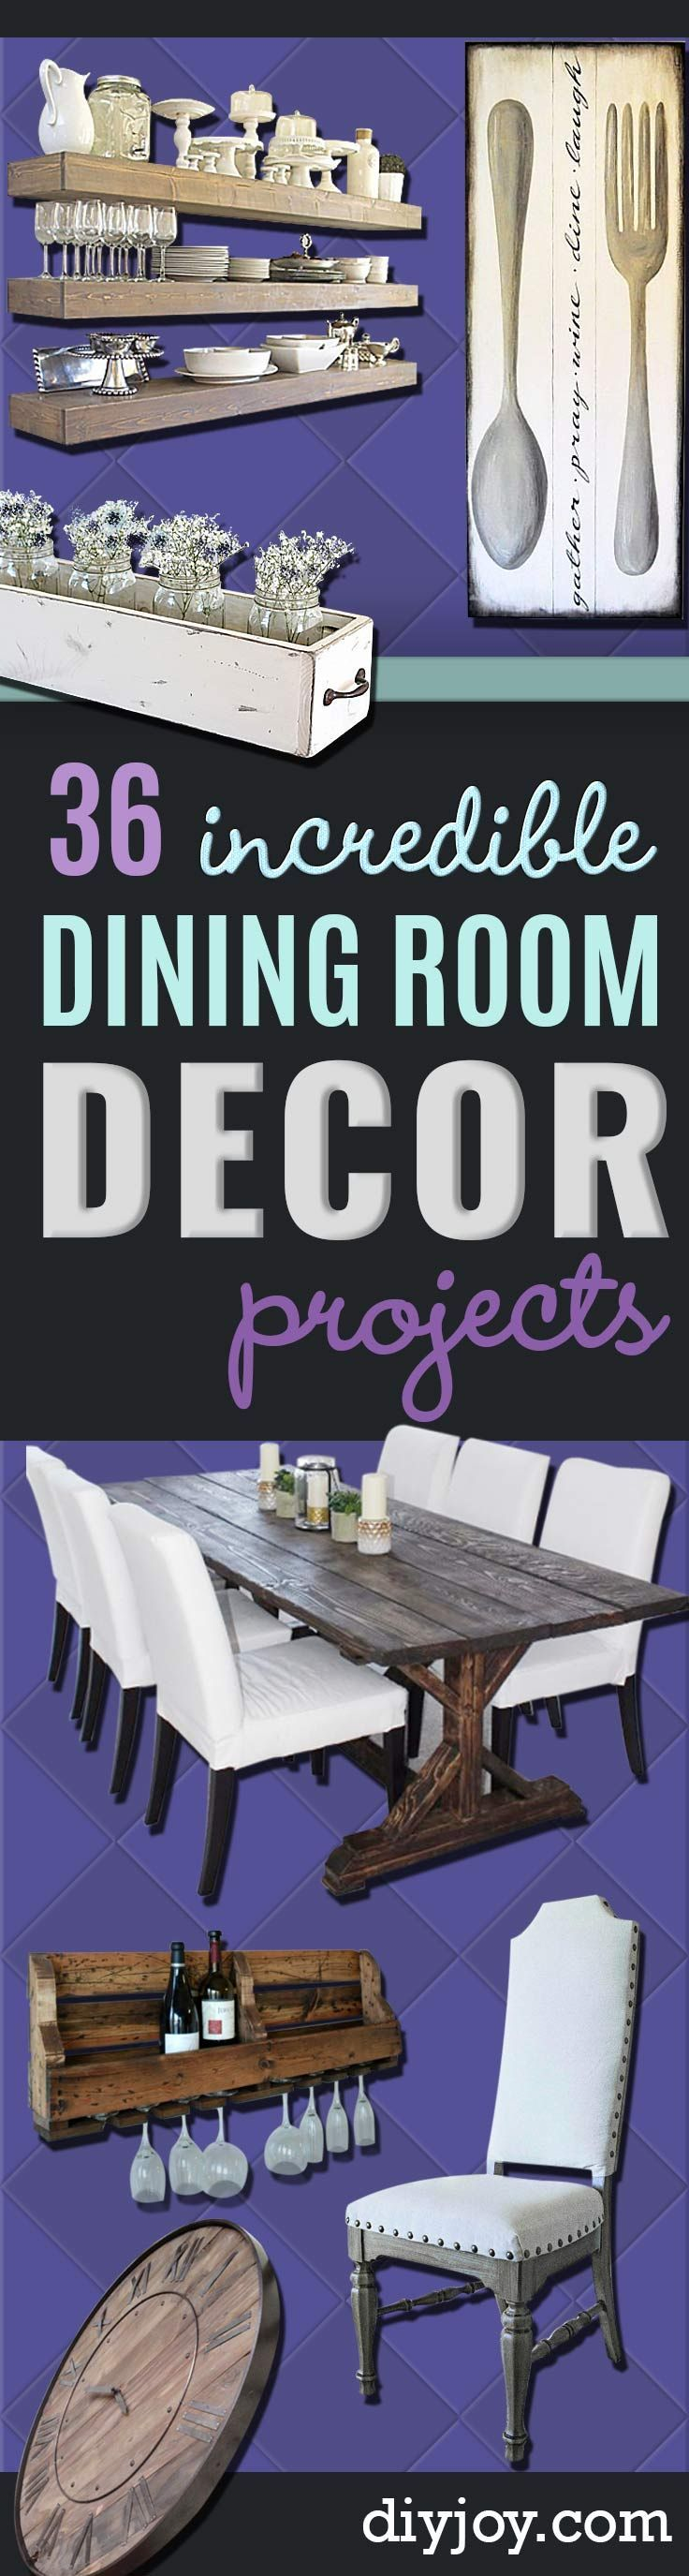 DIY Dining Room Decor Ideas -  Cool DIY Projects for Table, Chairs, Decorations, Wall Art, Bench Plans, Storage, Buffet, Hutch and Lighting Tutorials diyjoy.com/...